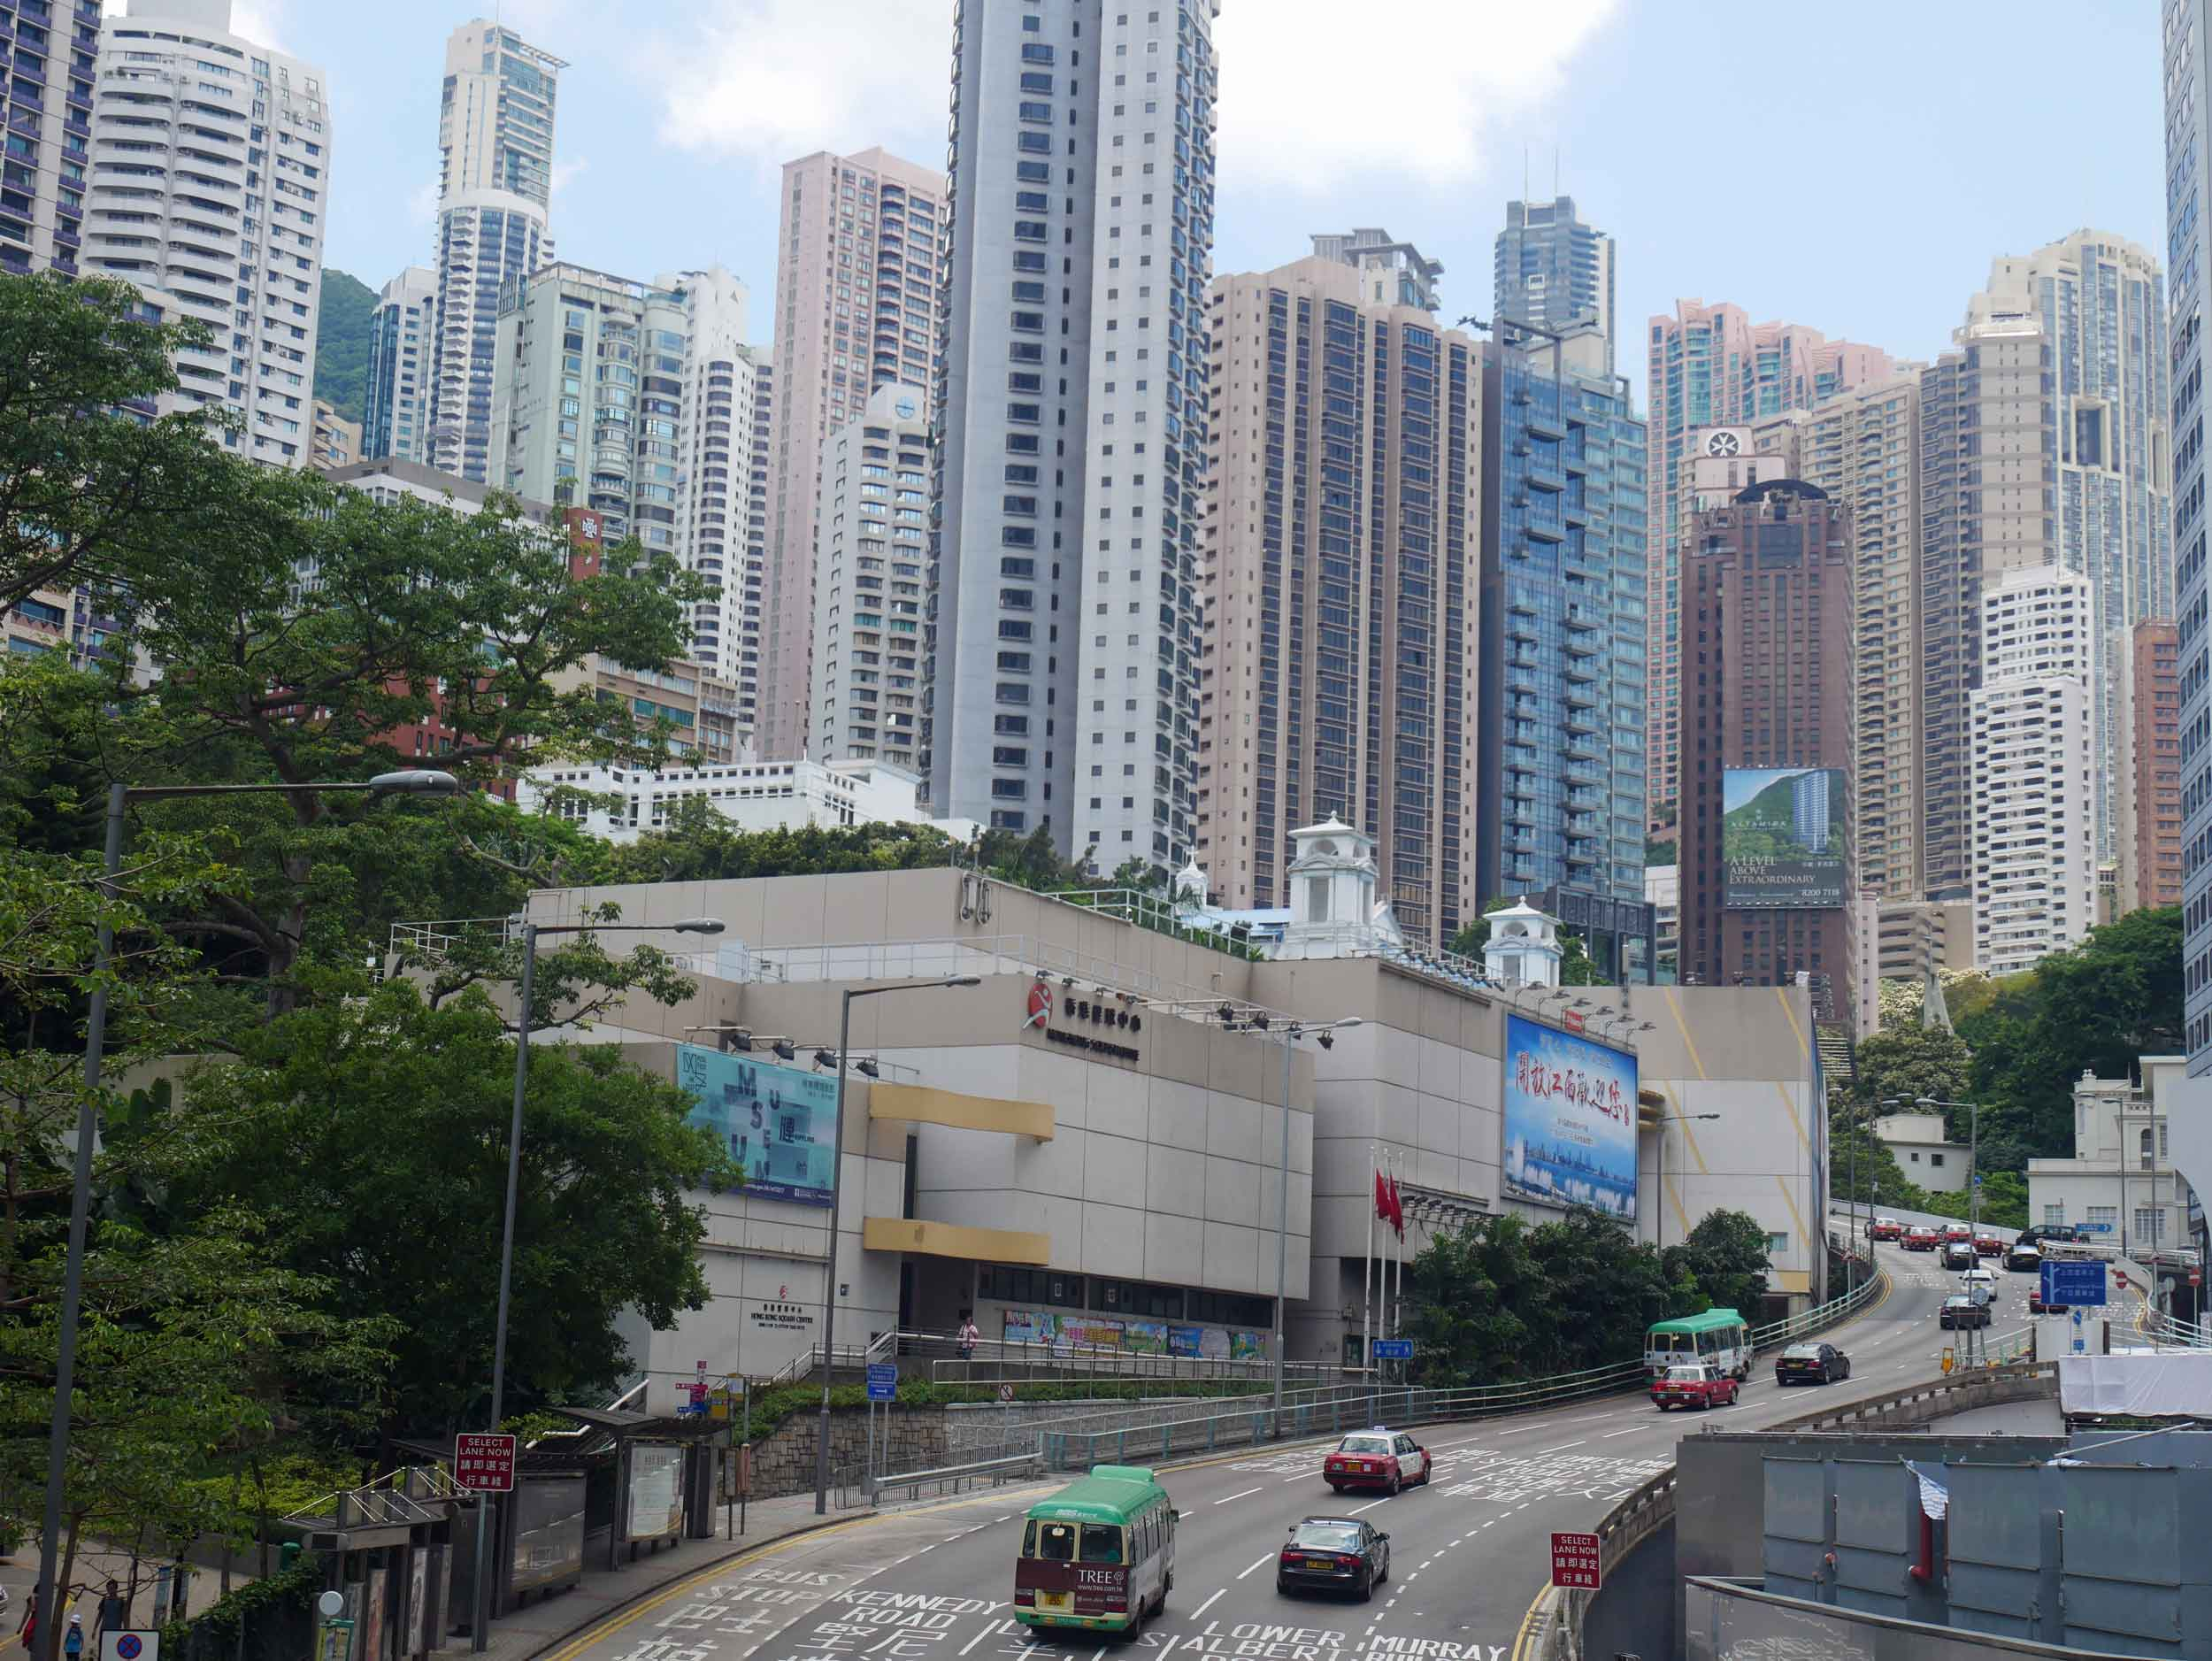 The view looking into the city as we crossed into Hong Kong Park.